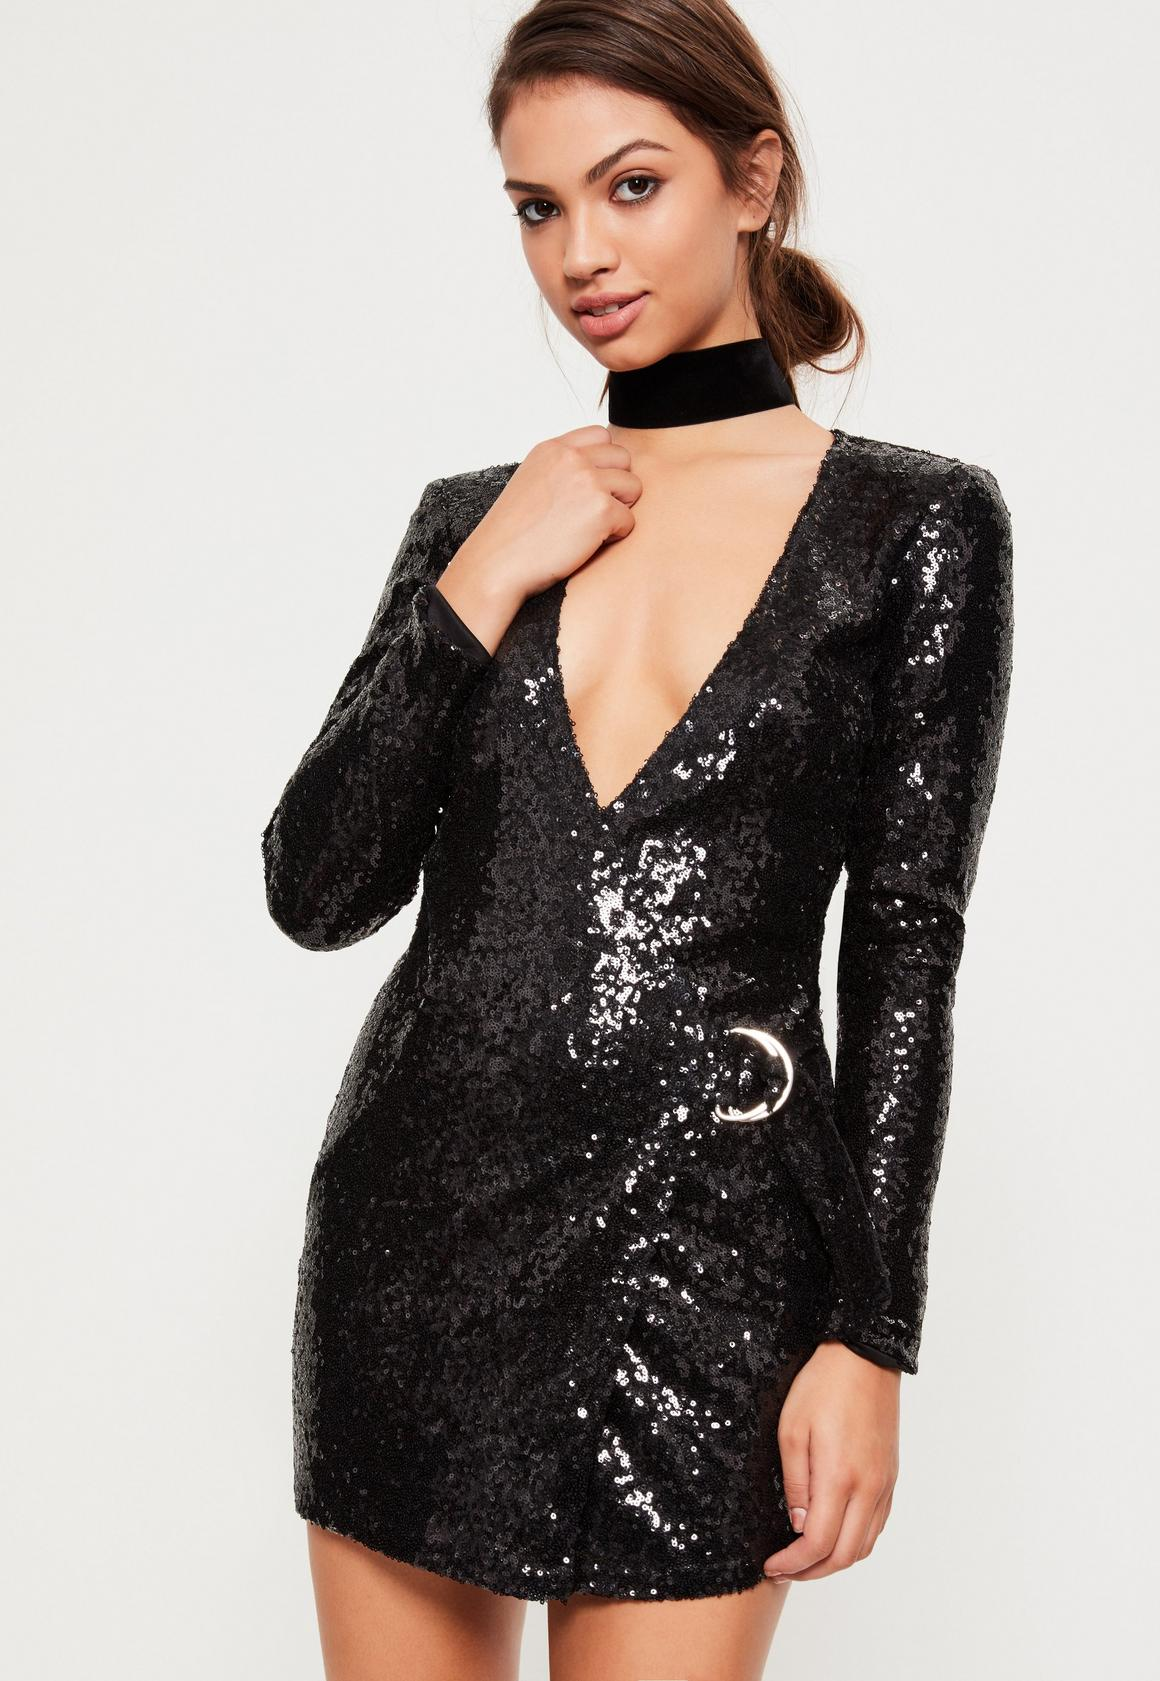 Sequin Dresses - Sparkly Dresses | Missguided